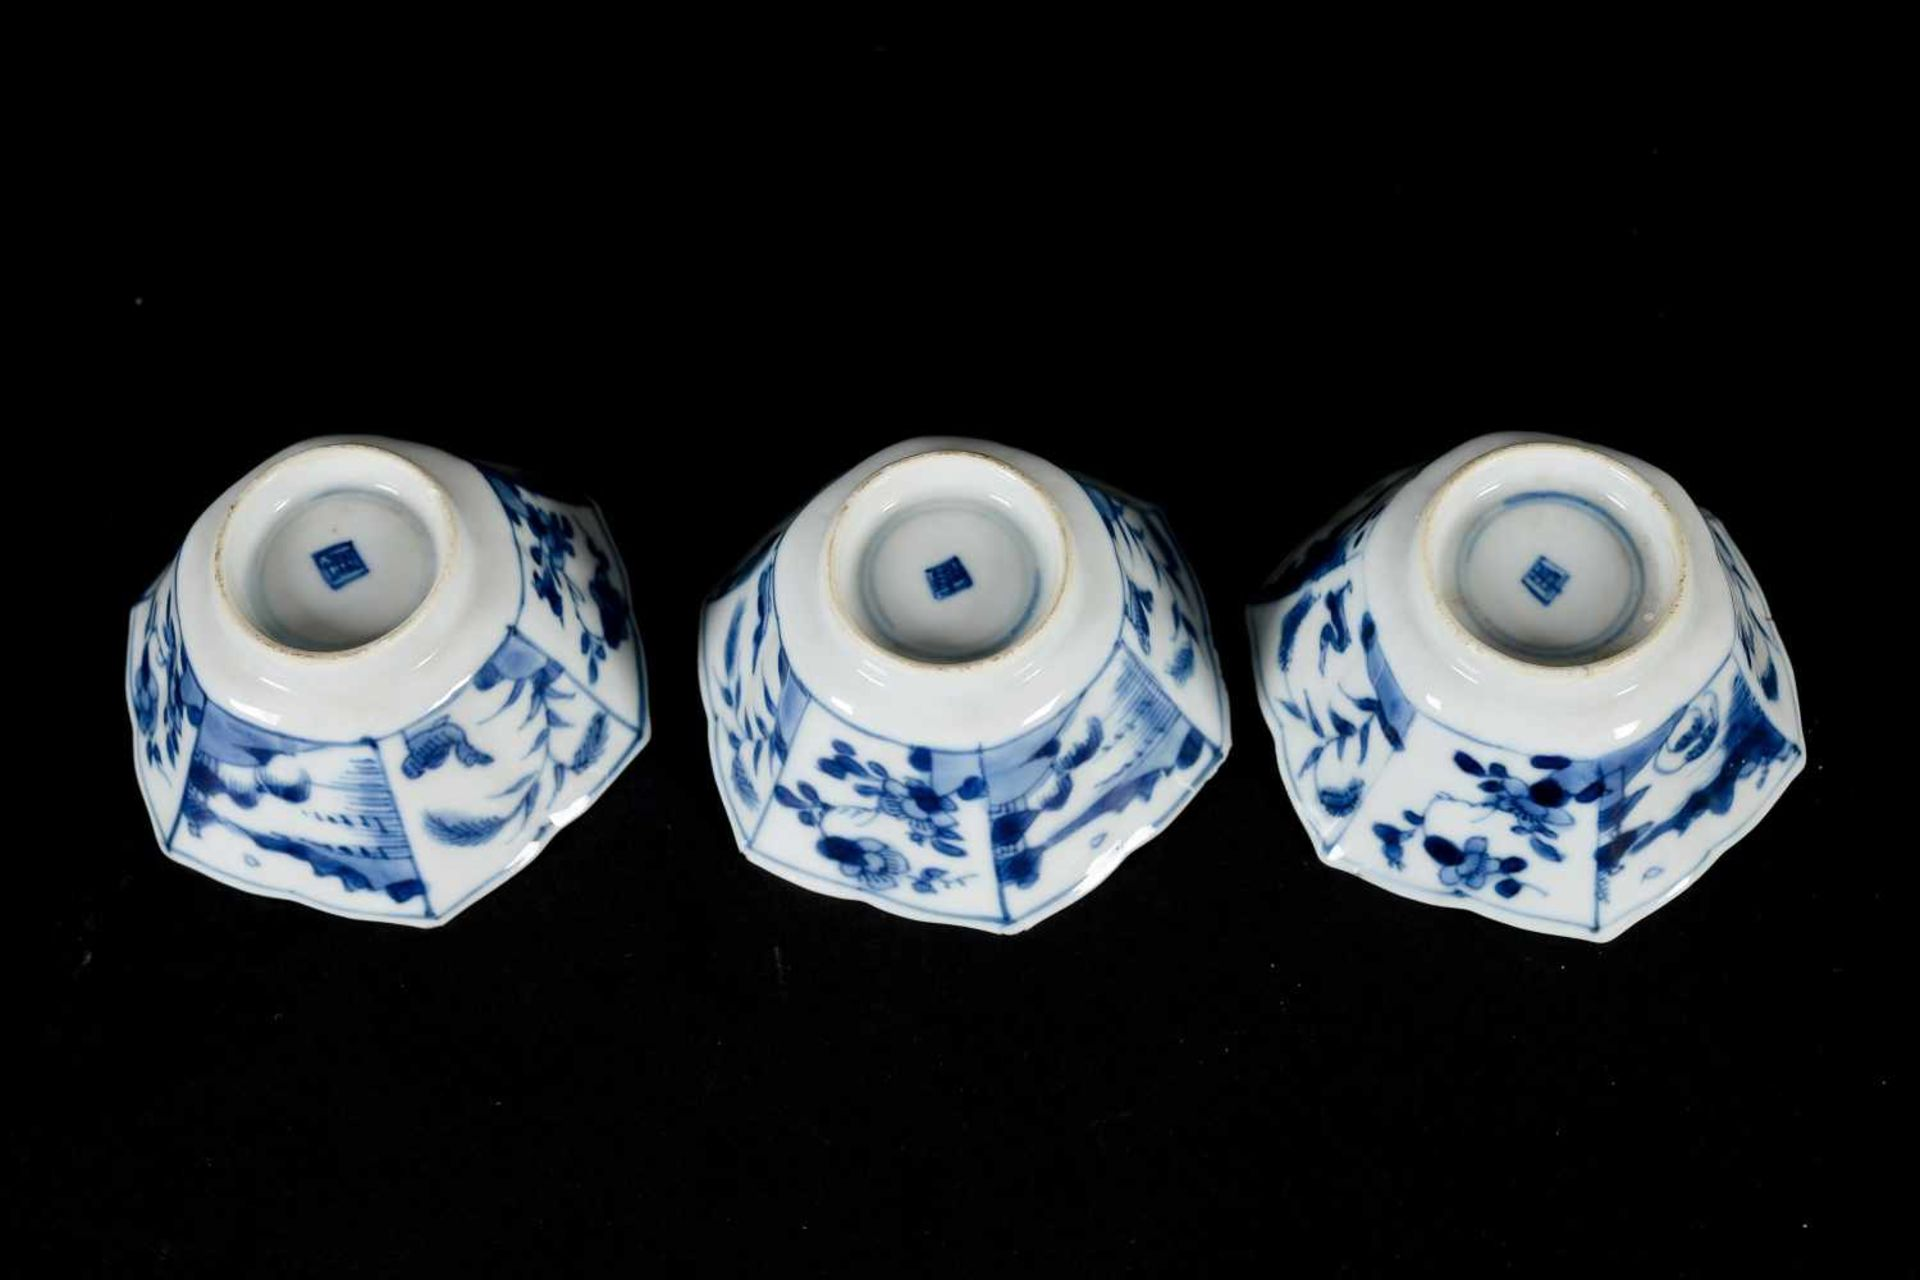 A set of three hexagonal blue and white porcelain cups with saucers, decorated with ducks, flowers - Bild 11 aus 12